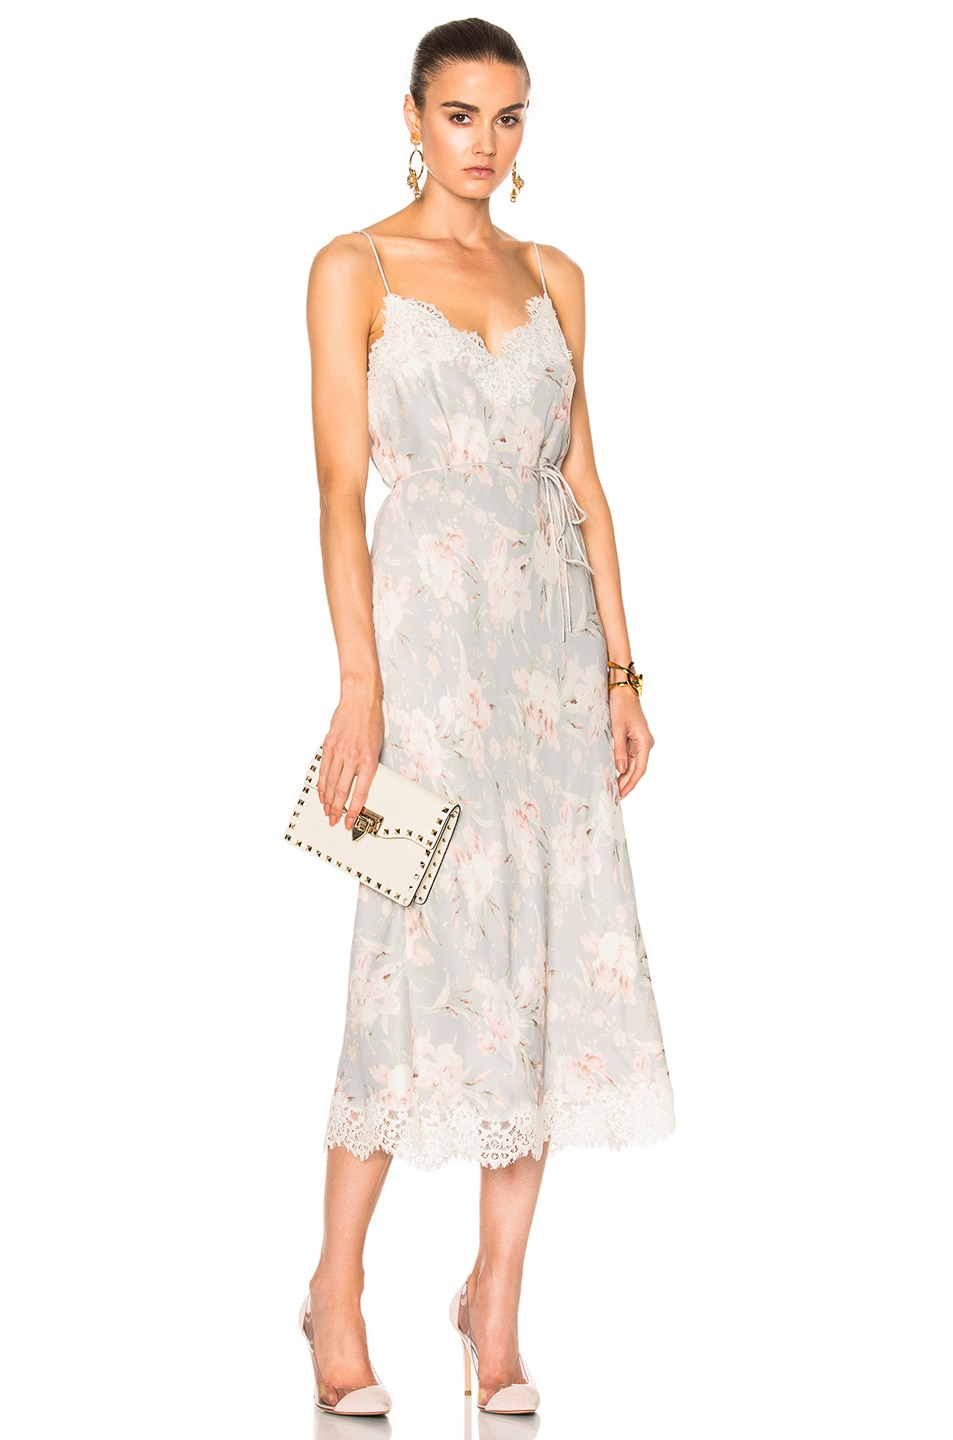 c7bcb9153093 Image 1 of Zimmermann Stranded Lace Slip in Iris Floral